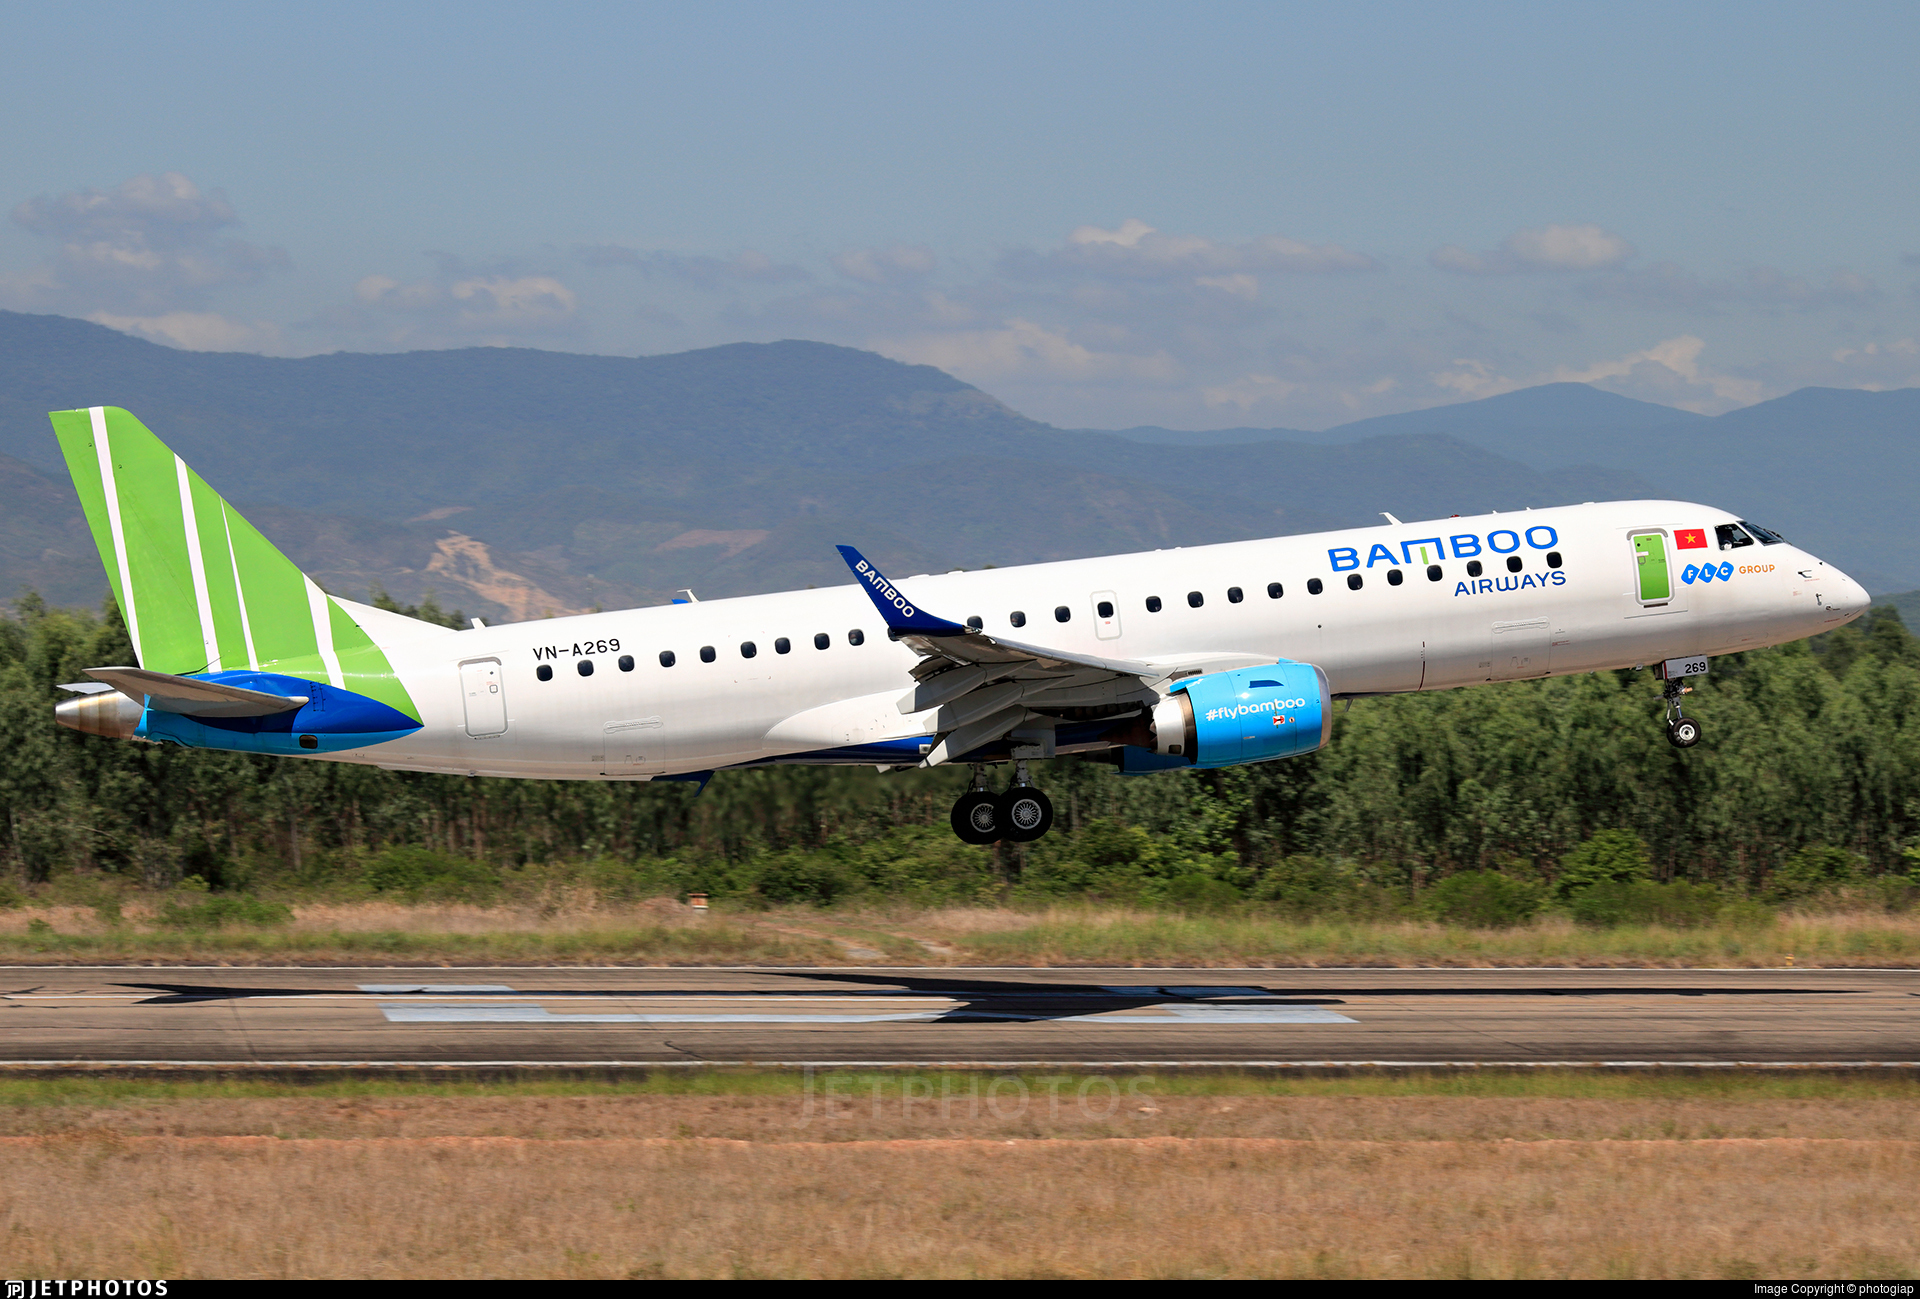 VN-A269 - Embraer 190-100LR - Bamboo Airways